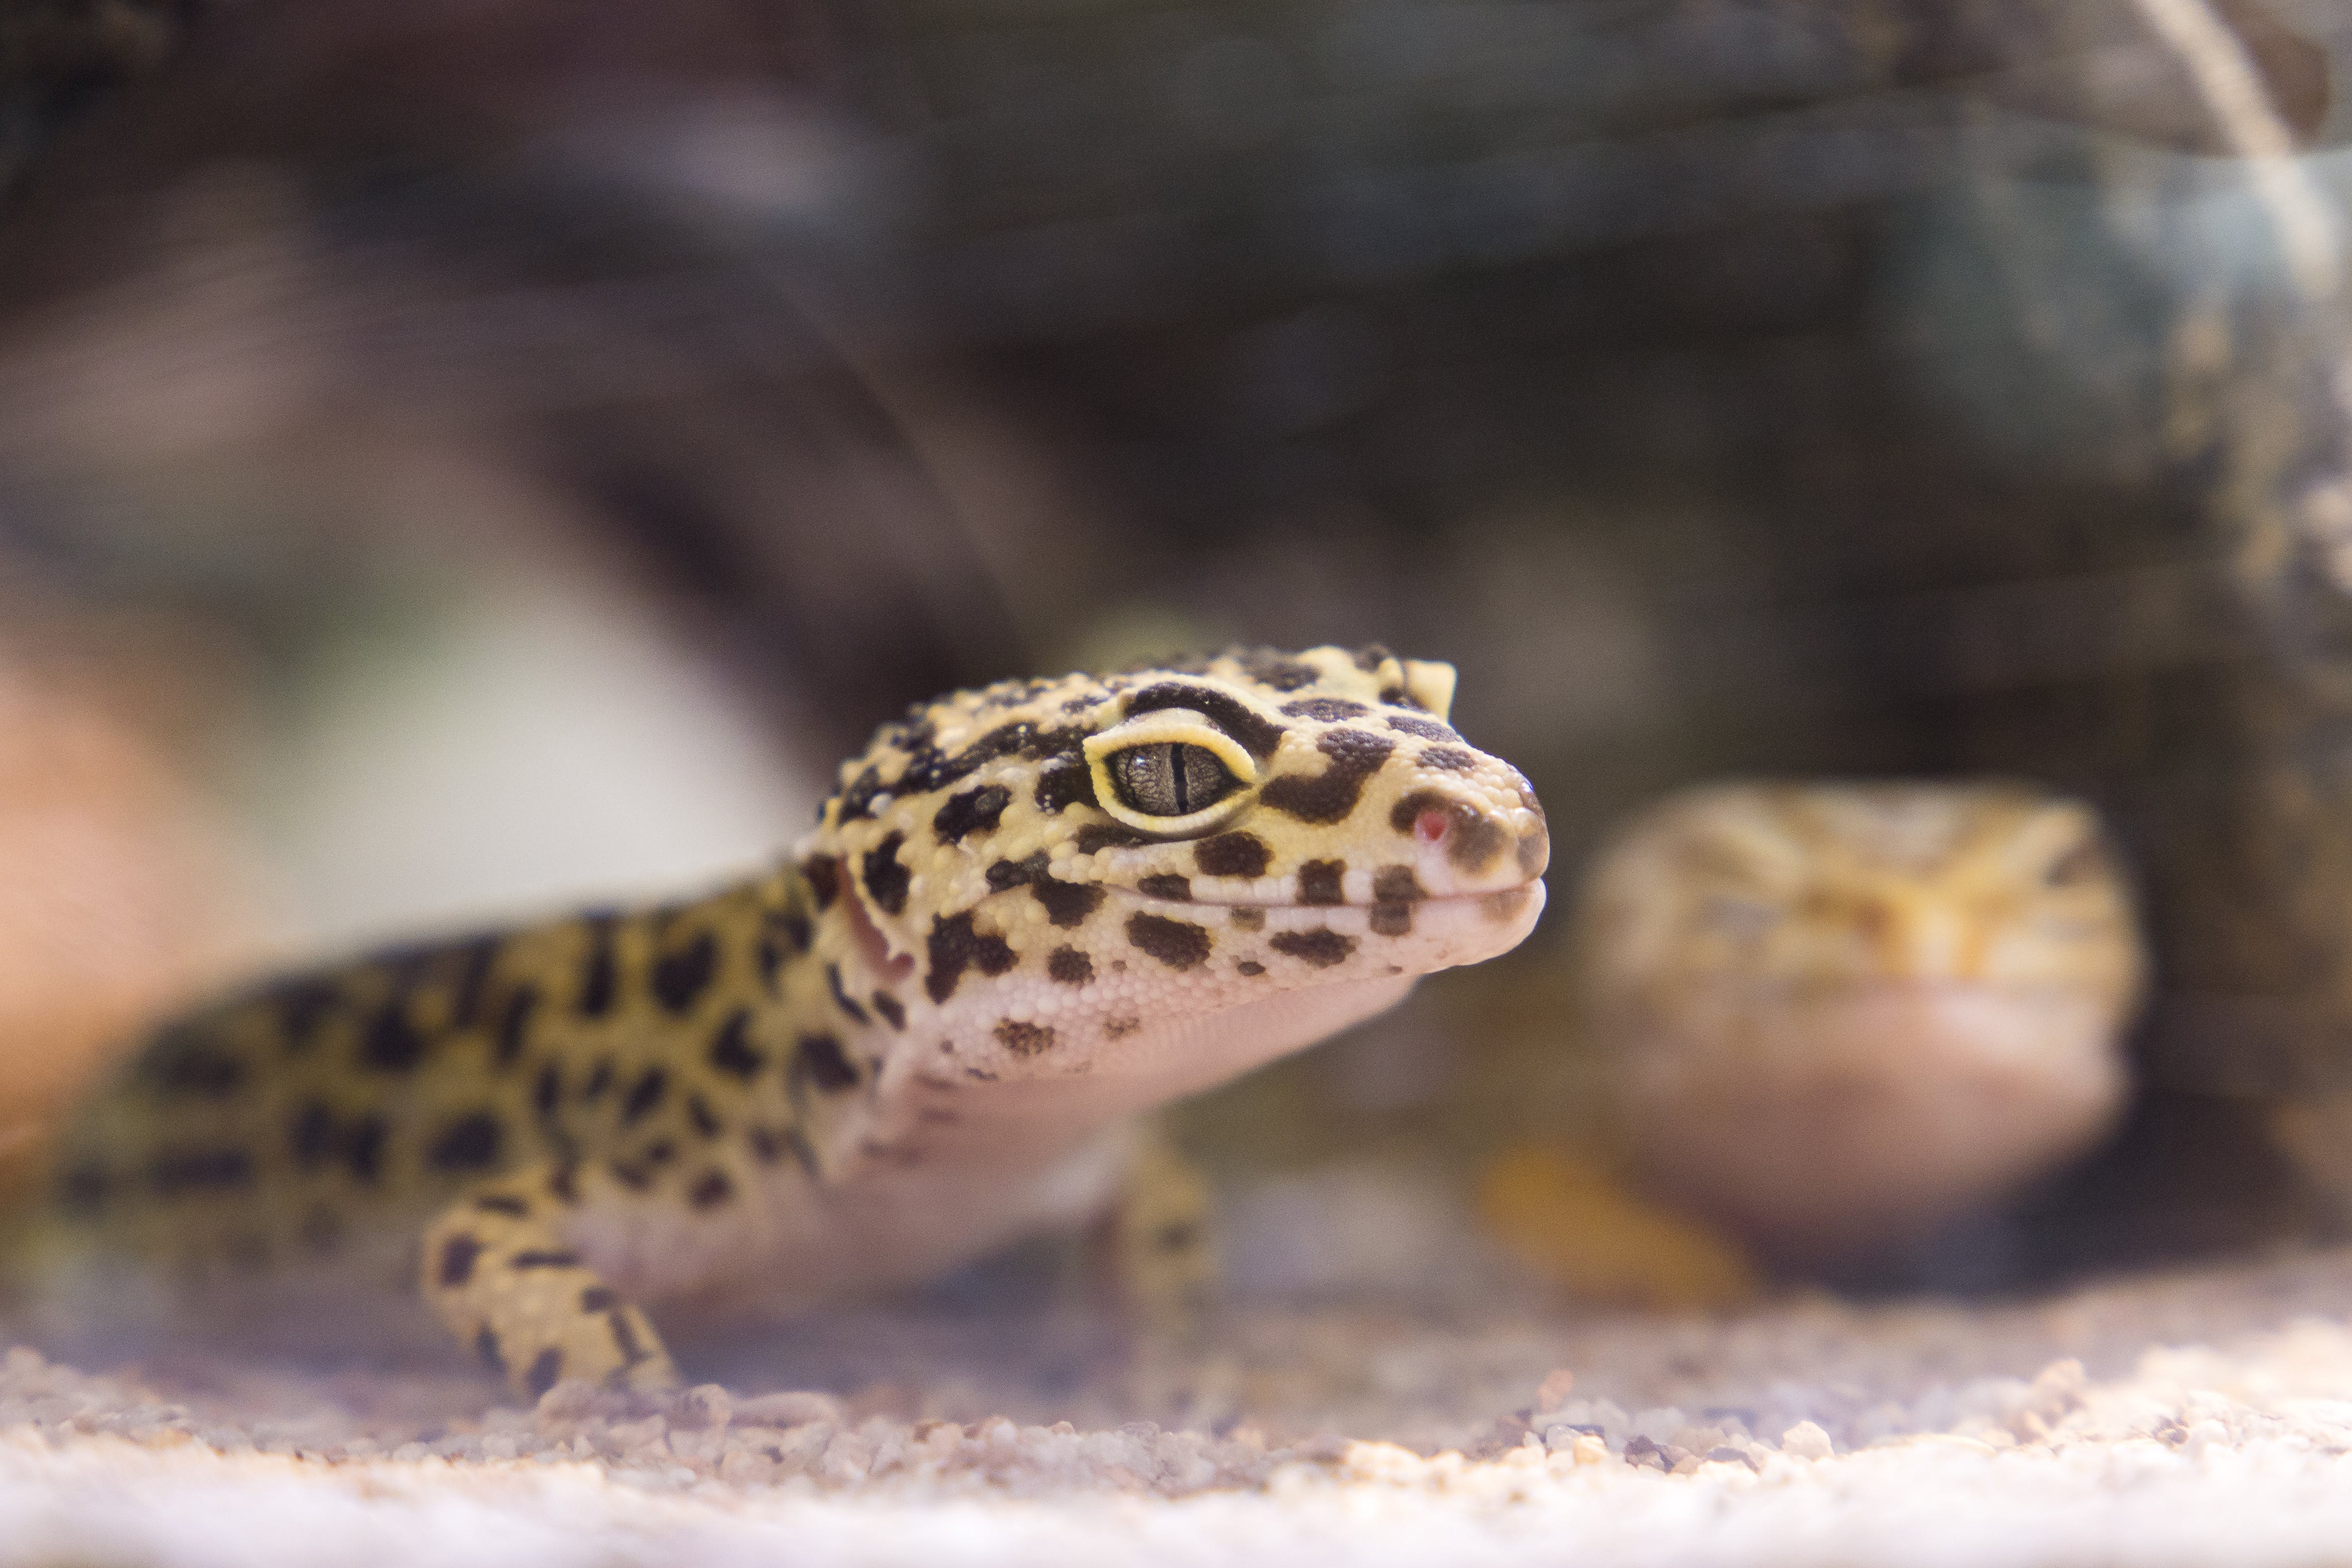 Close-up Photography of Black and Brown Lizard